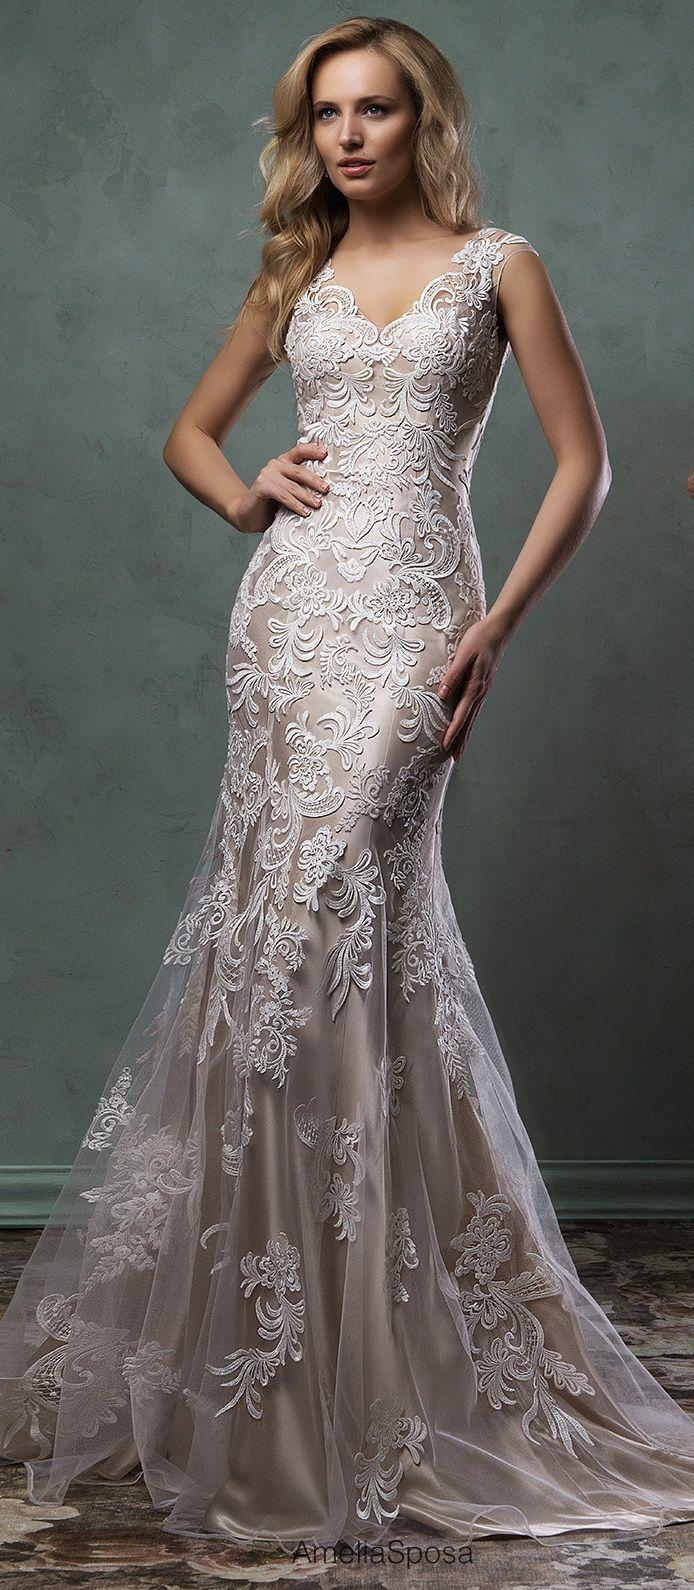 Nozze - Amelia Sposa 2016 Wedding Dresses Collection